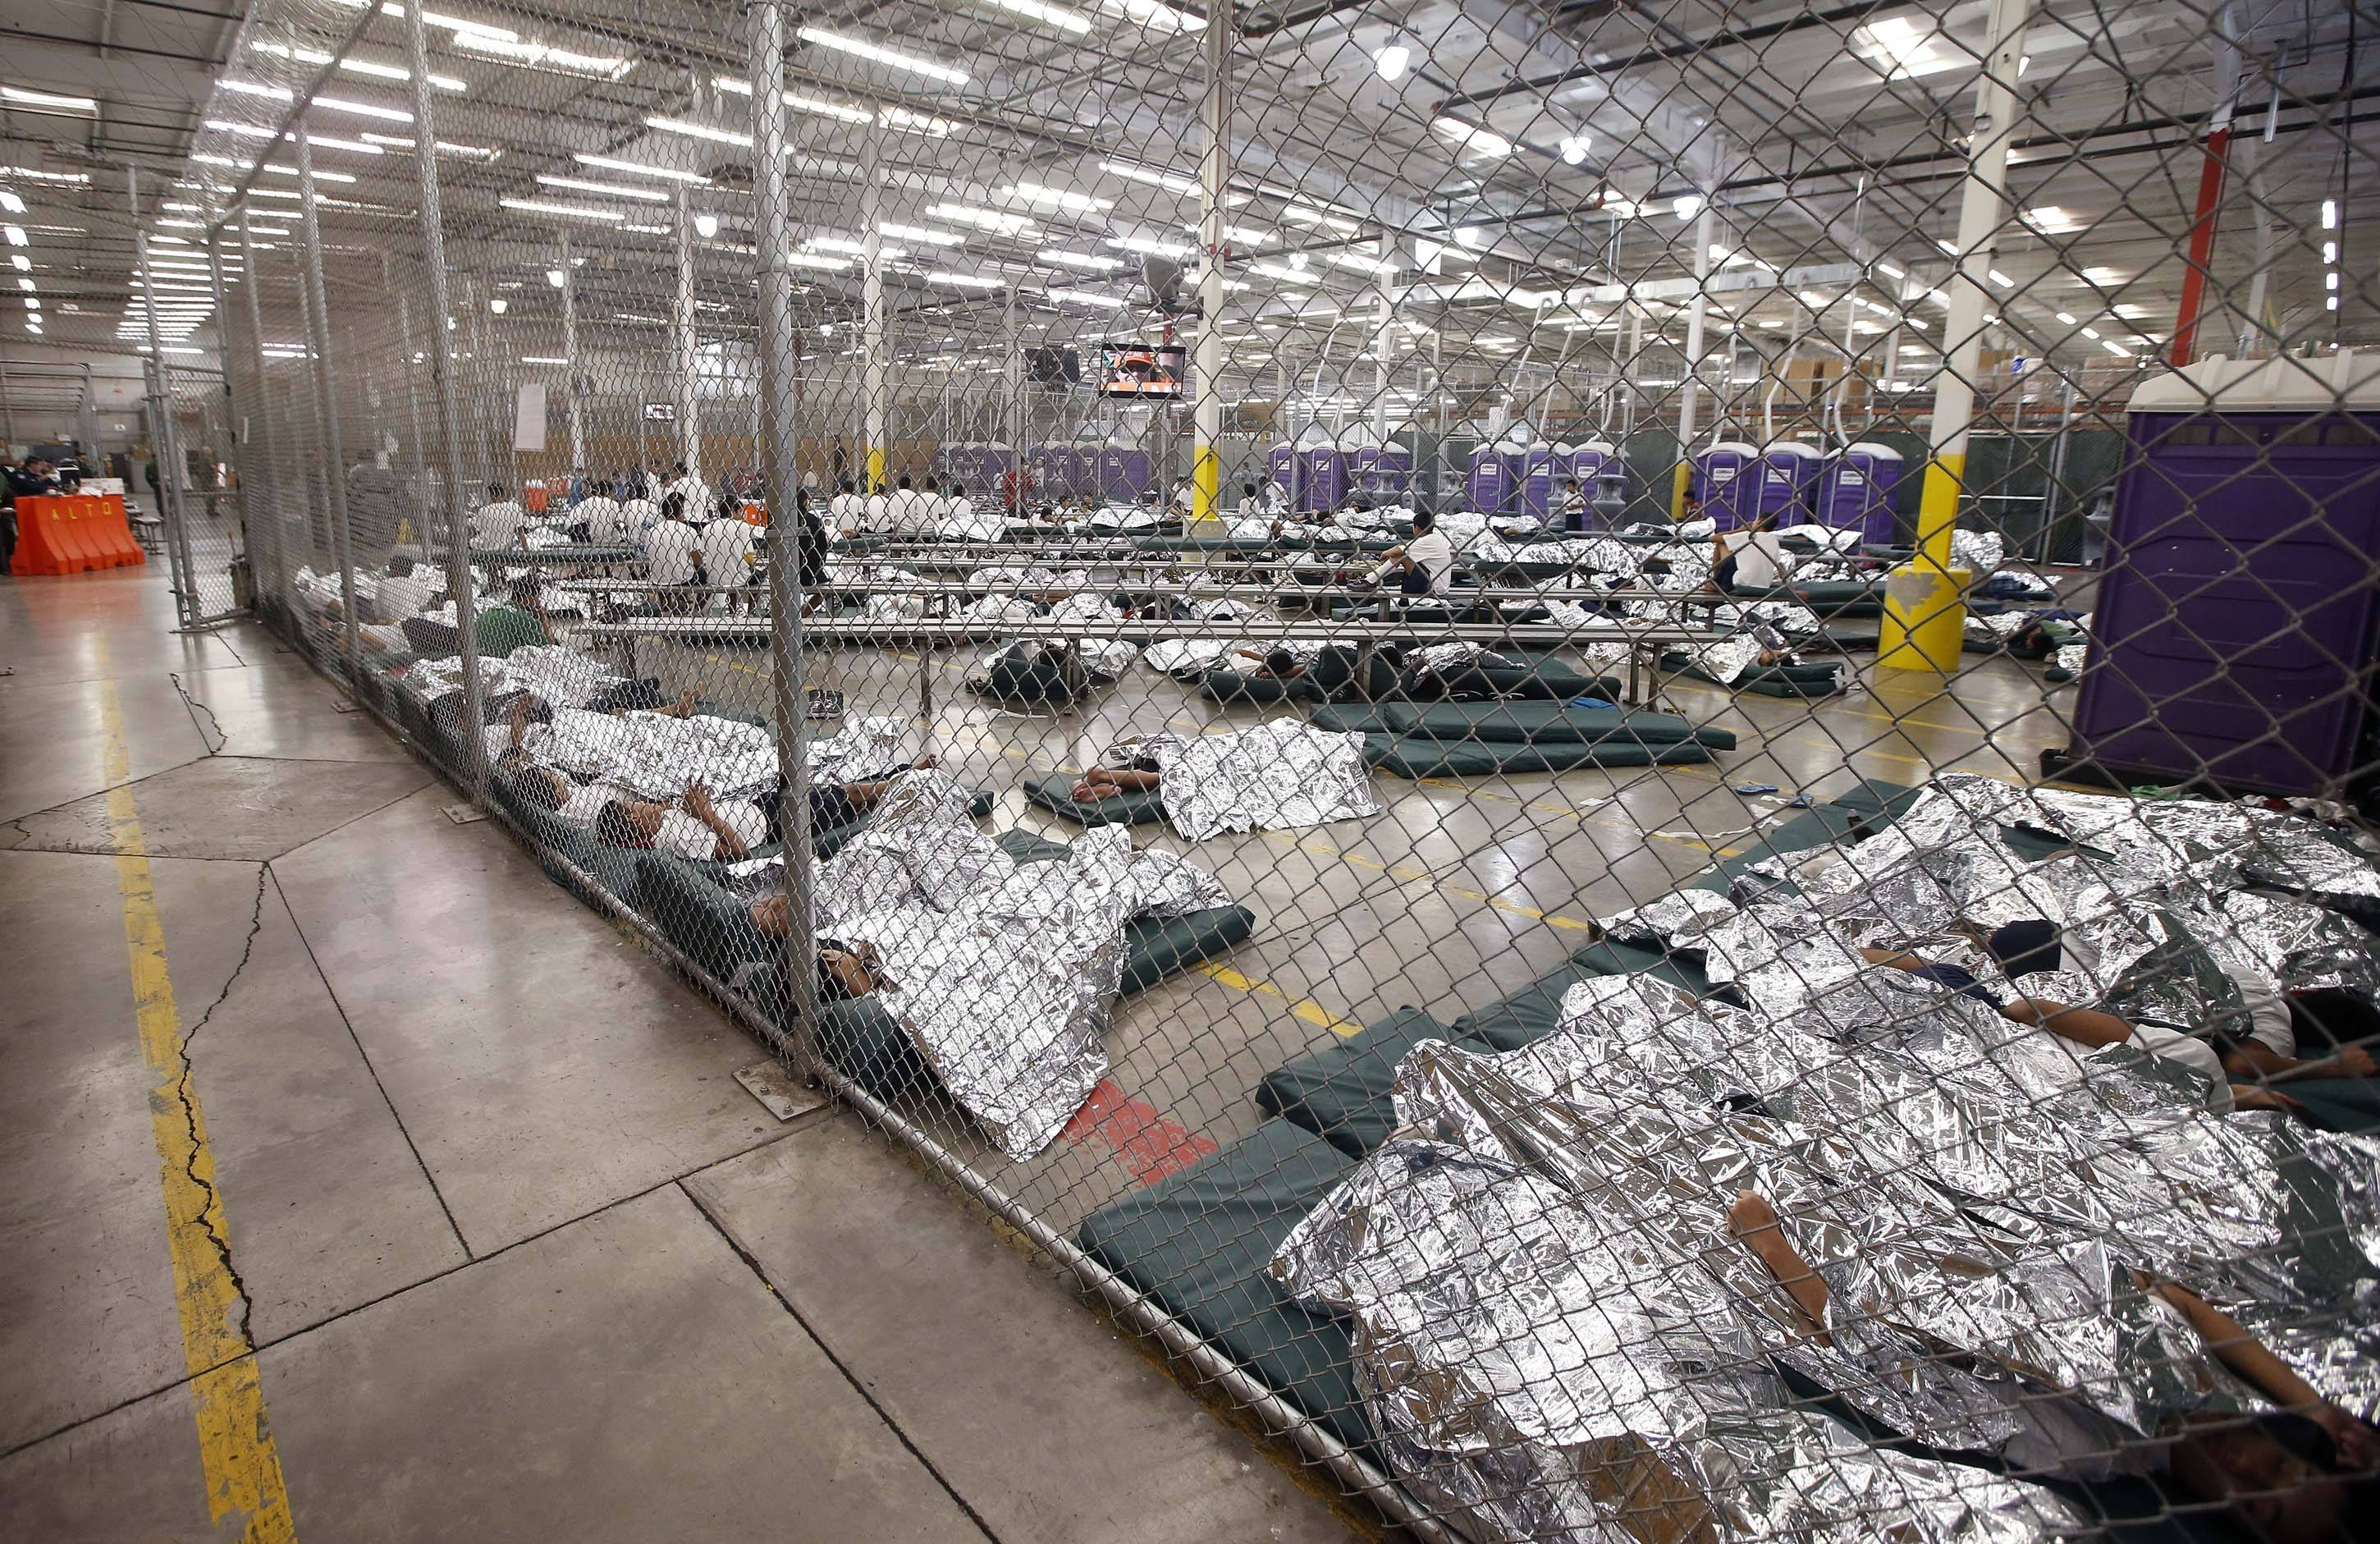 Detainees sleep and watch television in a holding cell Wednesday where hundreds of mostly Central American immigrant children are being processed and held at the U.S. Customs and Border Protection Nogales Placement Center in Nogales, Ariz. CPB provided media tours Wednesday of two locations in Brownsville, Texas, and Nogales, that have been central to processing the more than 47,000 unaccompanied children who have entered the country illegally since Oct. 1.